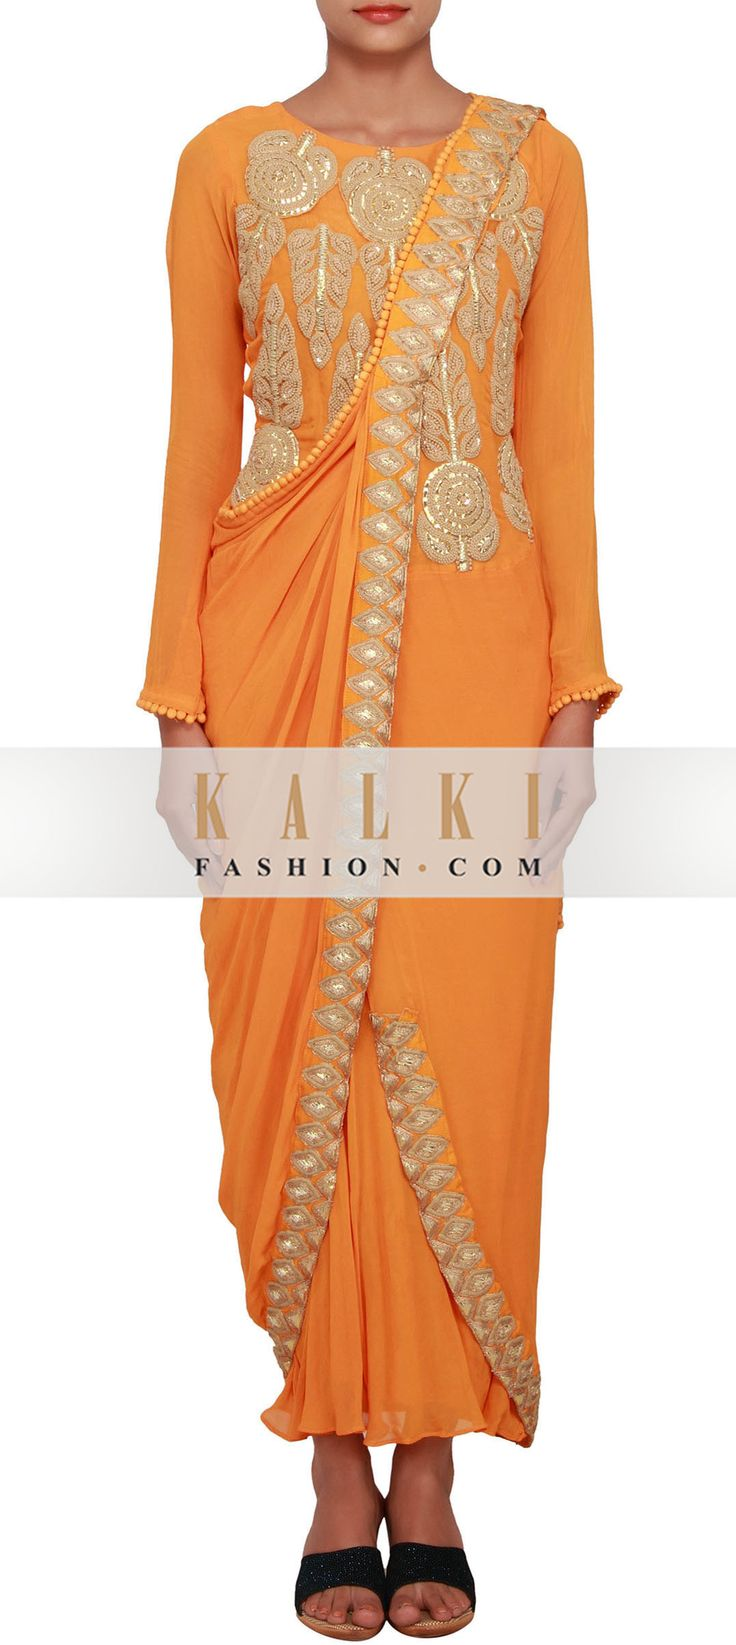 Buy Online from the link below. We ship worldwide (Free Shipping over US$100) http://www.kalkifashion.com/mustard-yellow-kurti-featured-in-georgette-embellished-with-gotta-patti-and-french-knot-only-on-kalki.html